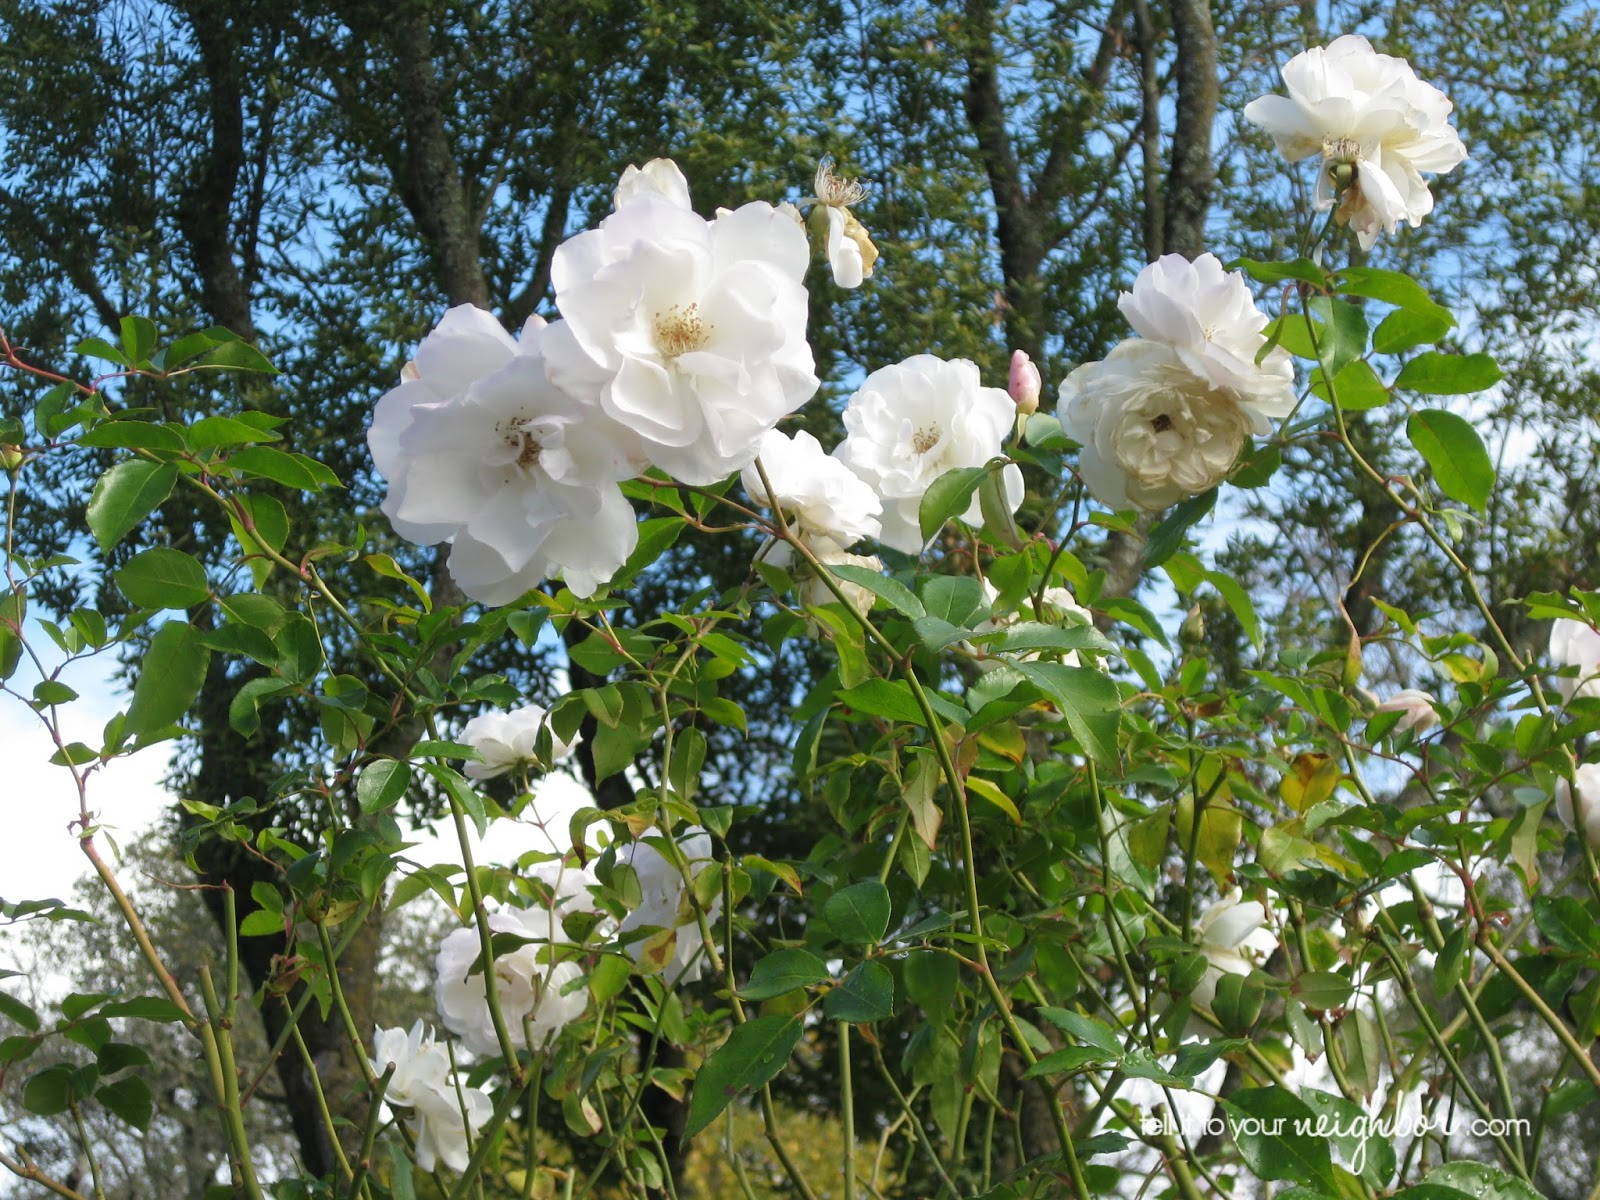 Itu0027s A Garden Of Mostly White Flowers And Also Plants With Shimmery Leaves  That Glow At Night When The Moon Is Out. I Love The Idea Of A Moon Garden,  ...